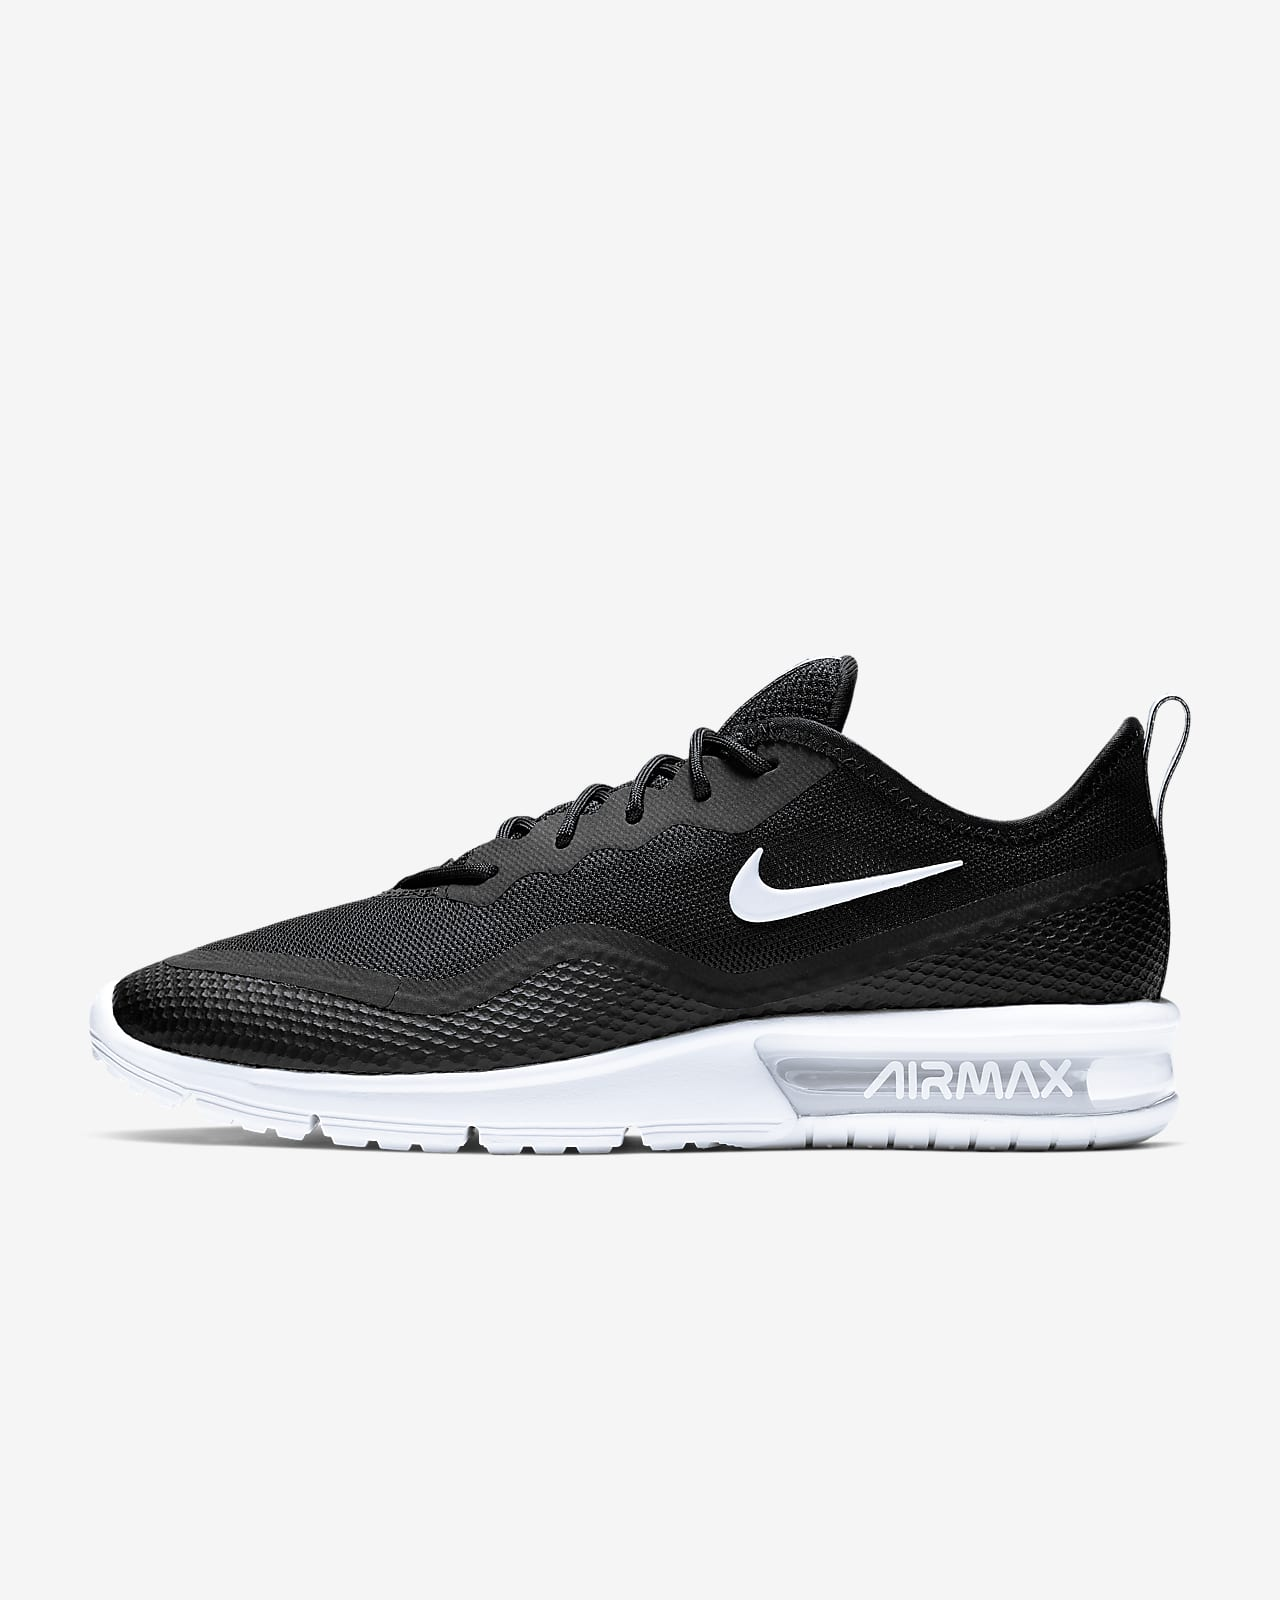 Chaussure de running Nike Air Max Sequent 4.5 pour Homme